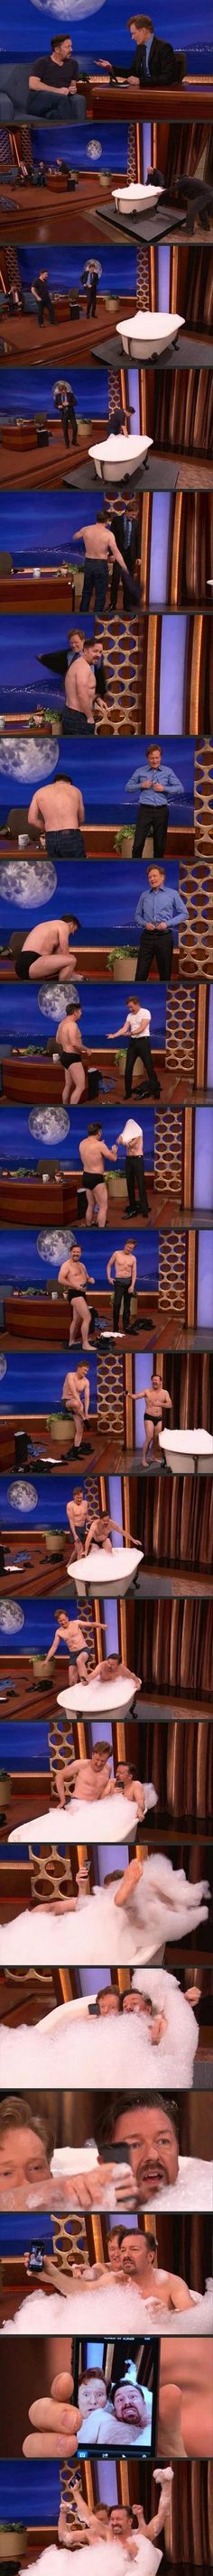 Conan O'Brien Takes A Bath With Ricky Gervais – 22 Pics